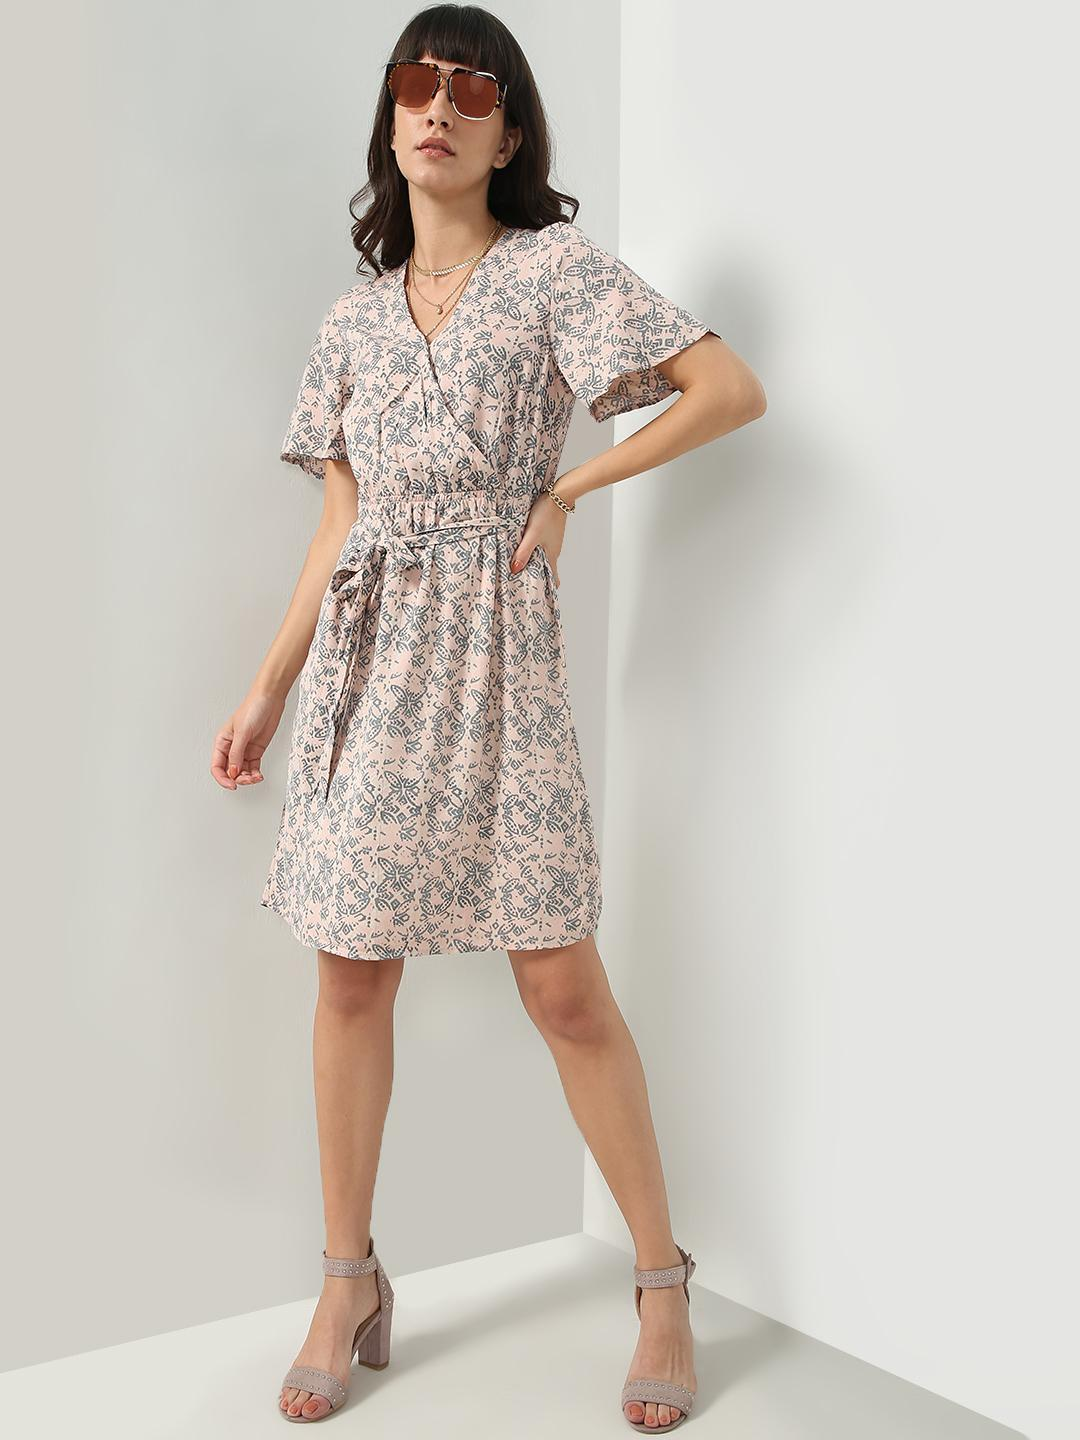 Oxolloxo Pink Floral Print Wrap Style Dress 1